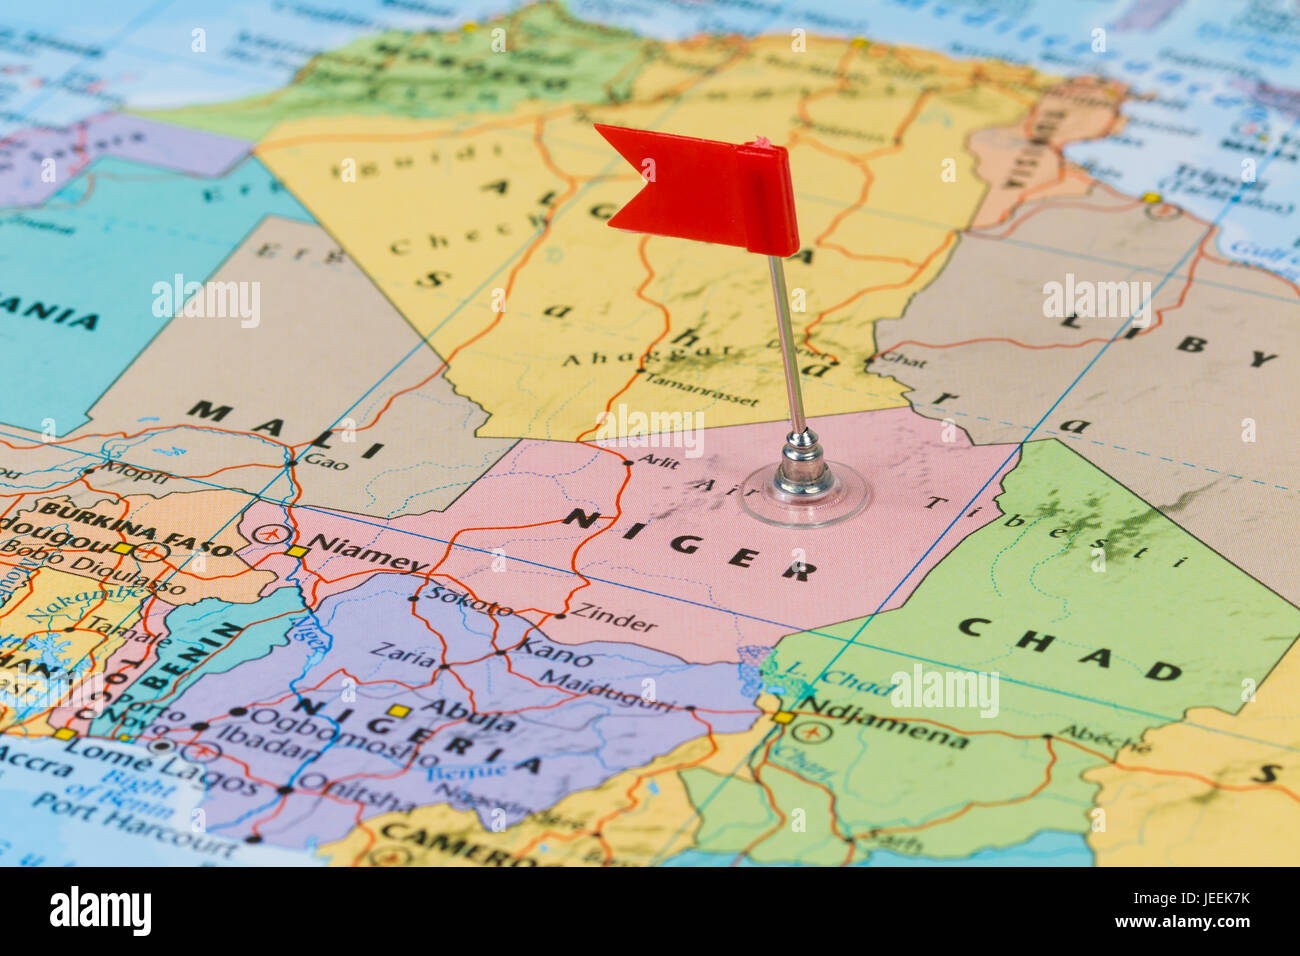 Pinned Niger Map Stock Photos & Pinned Niger Map Stock Images - Alamy